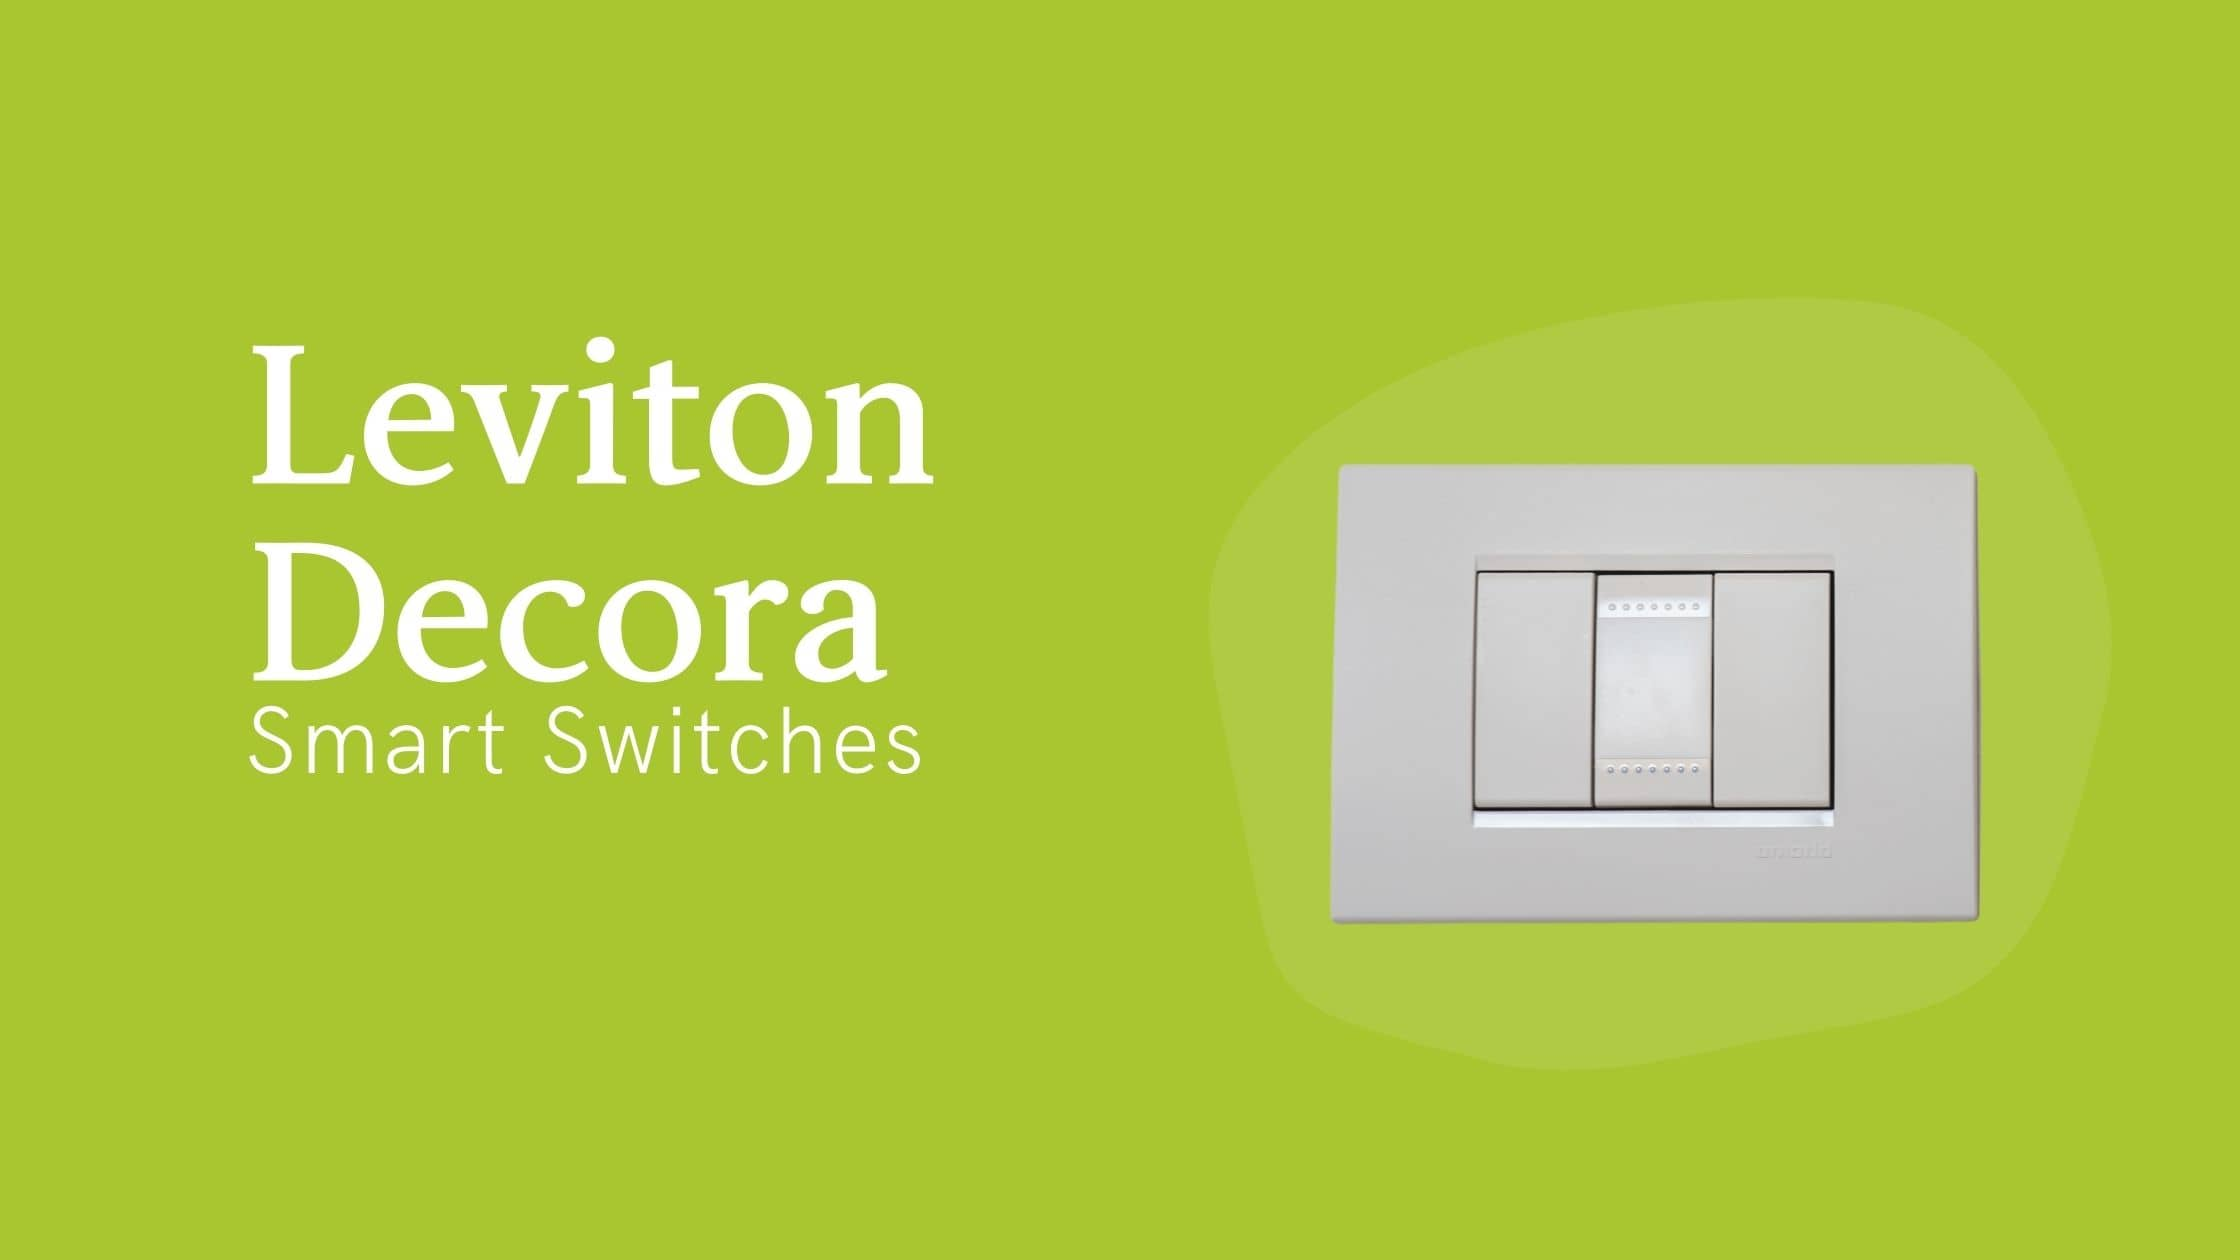 Leviton Decora Smart Switches